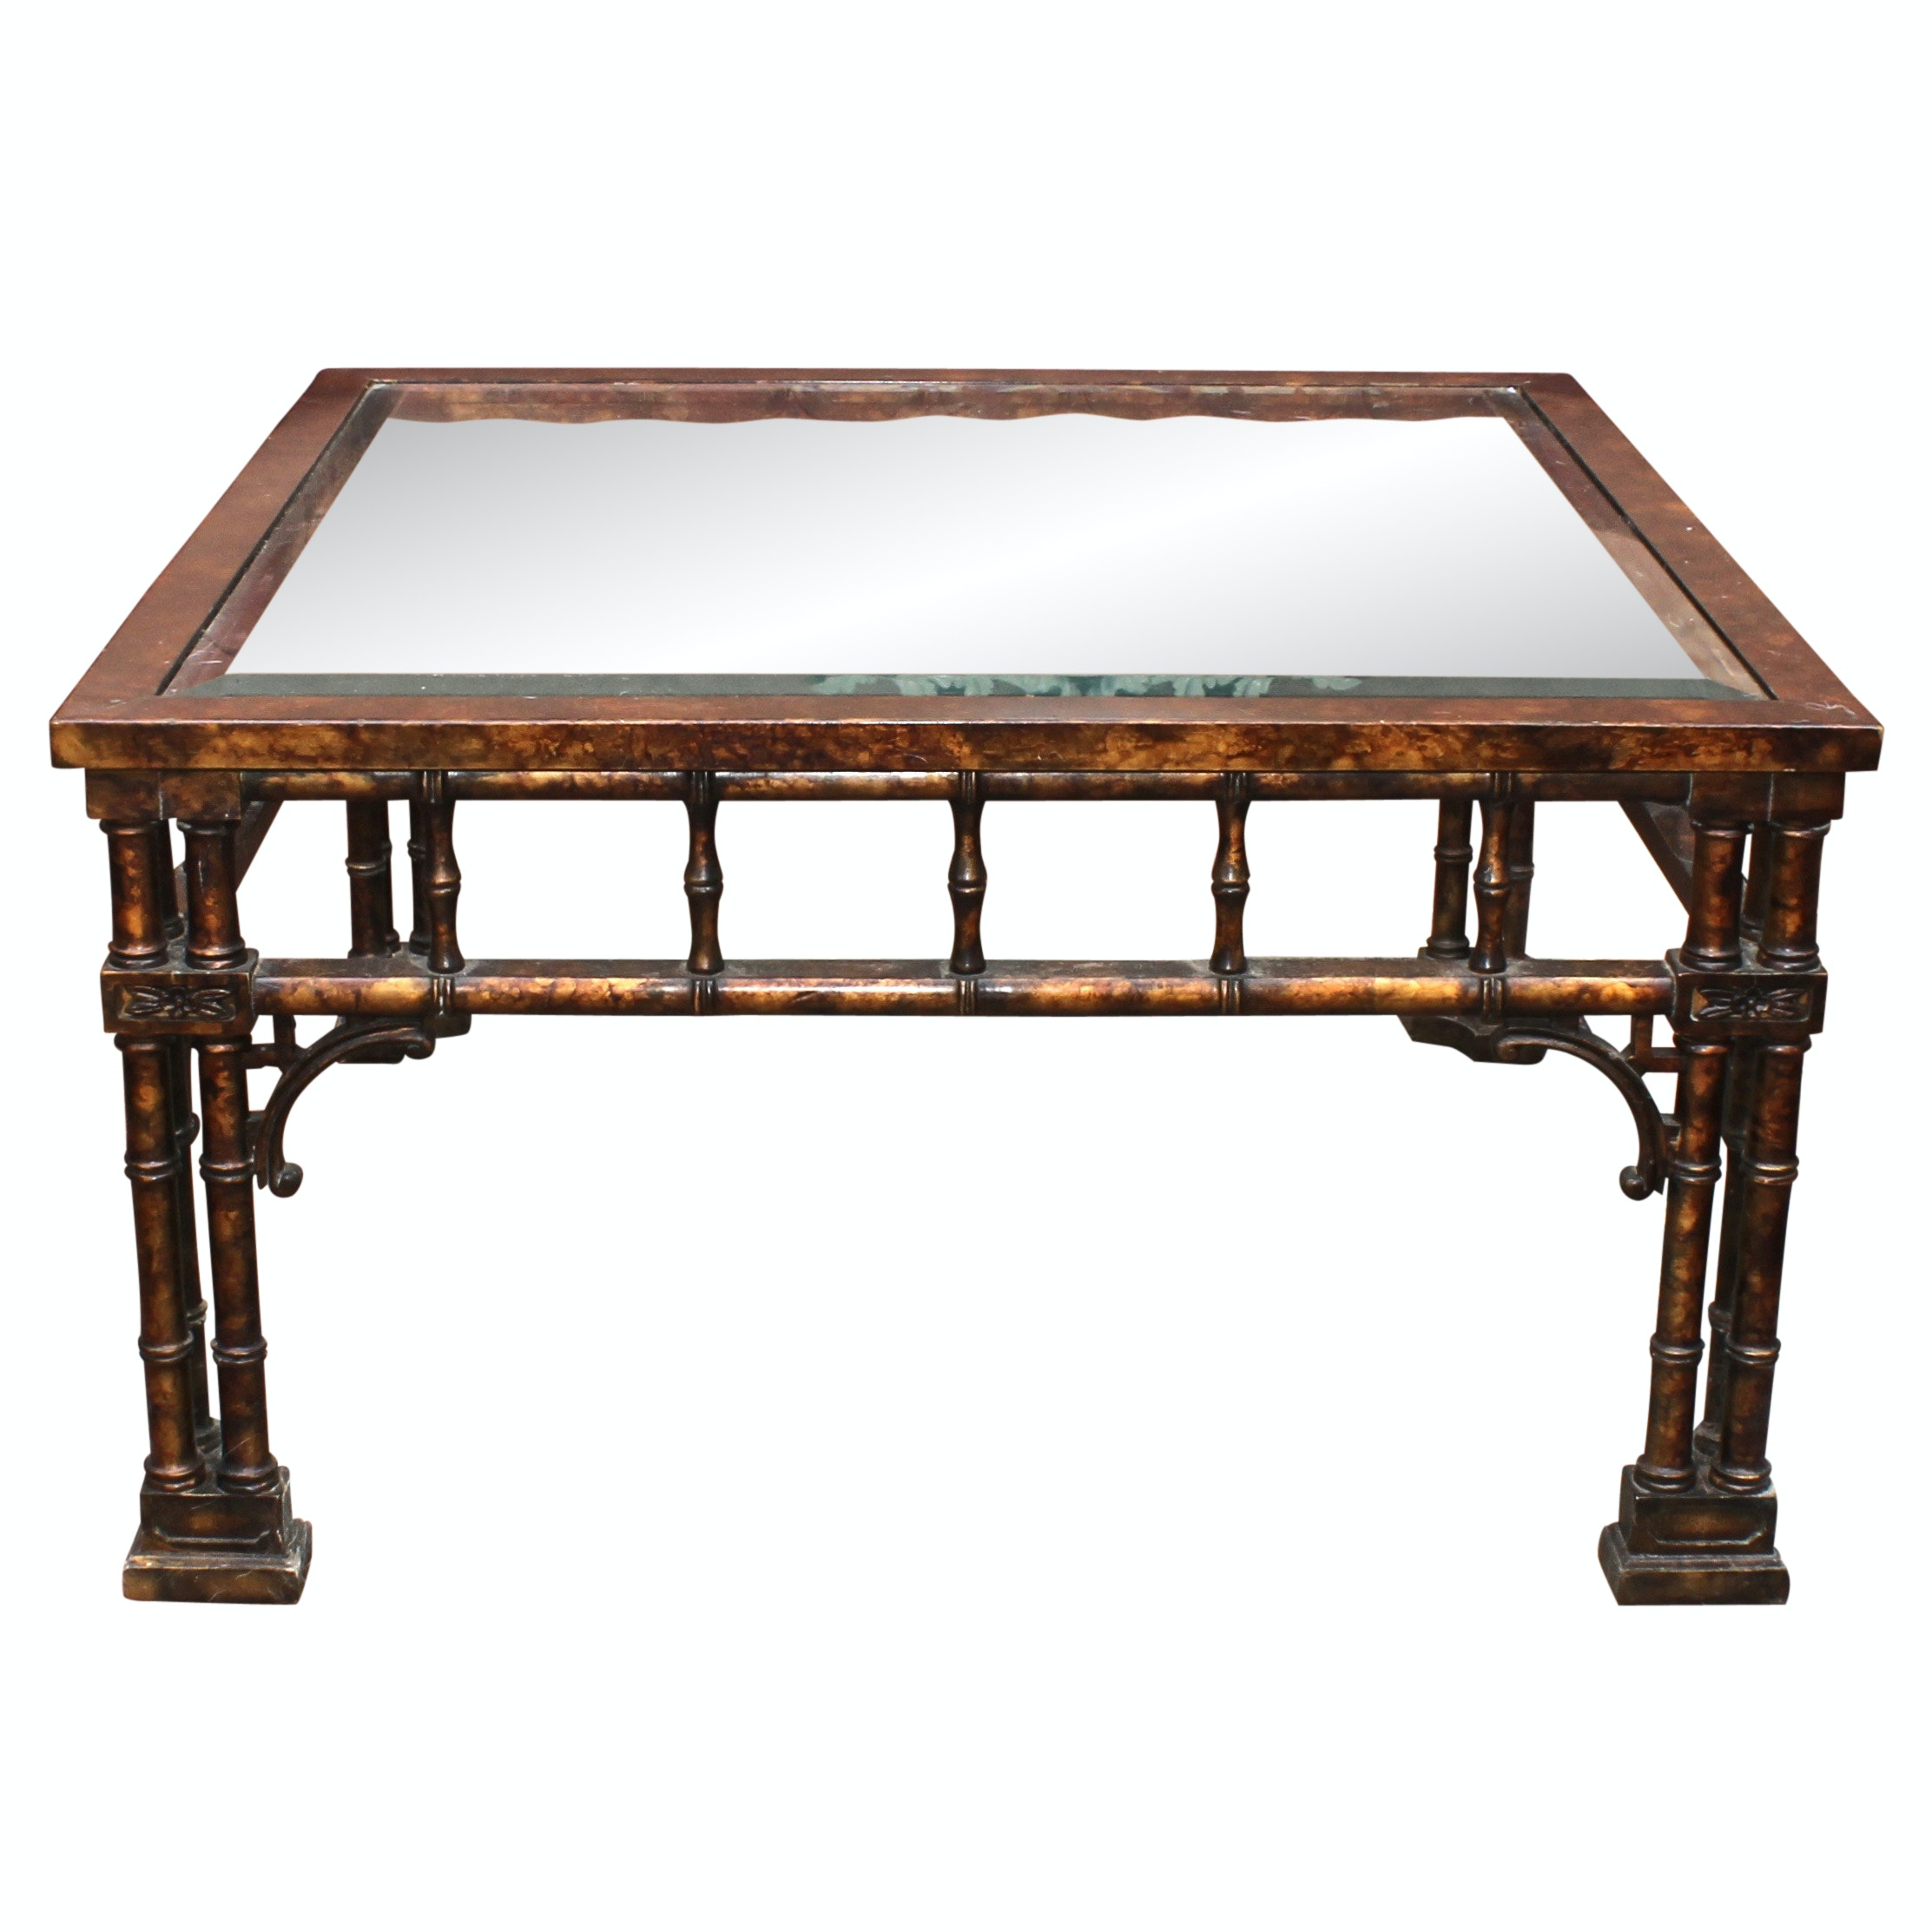 Bamboo Style Wooden and Glass Top Coffee Table